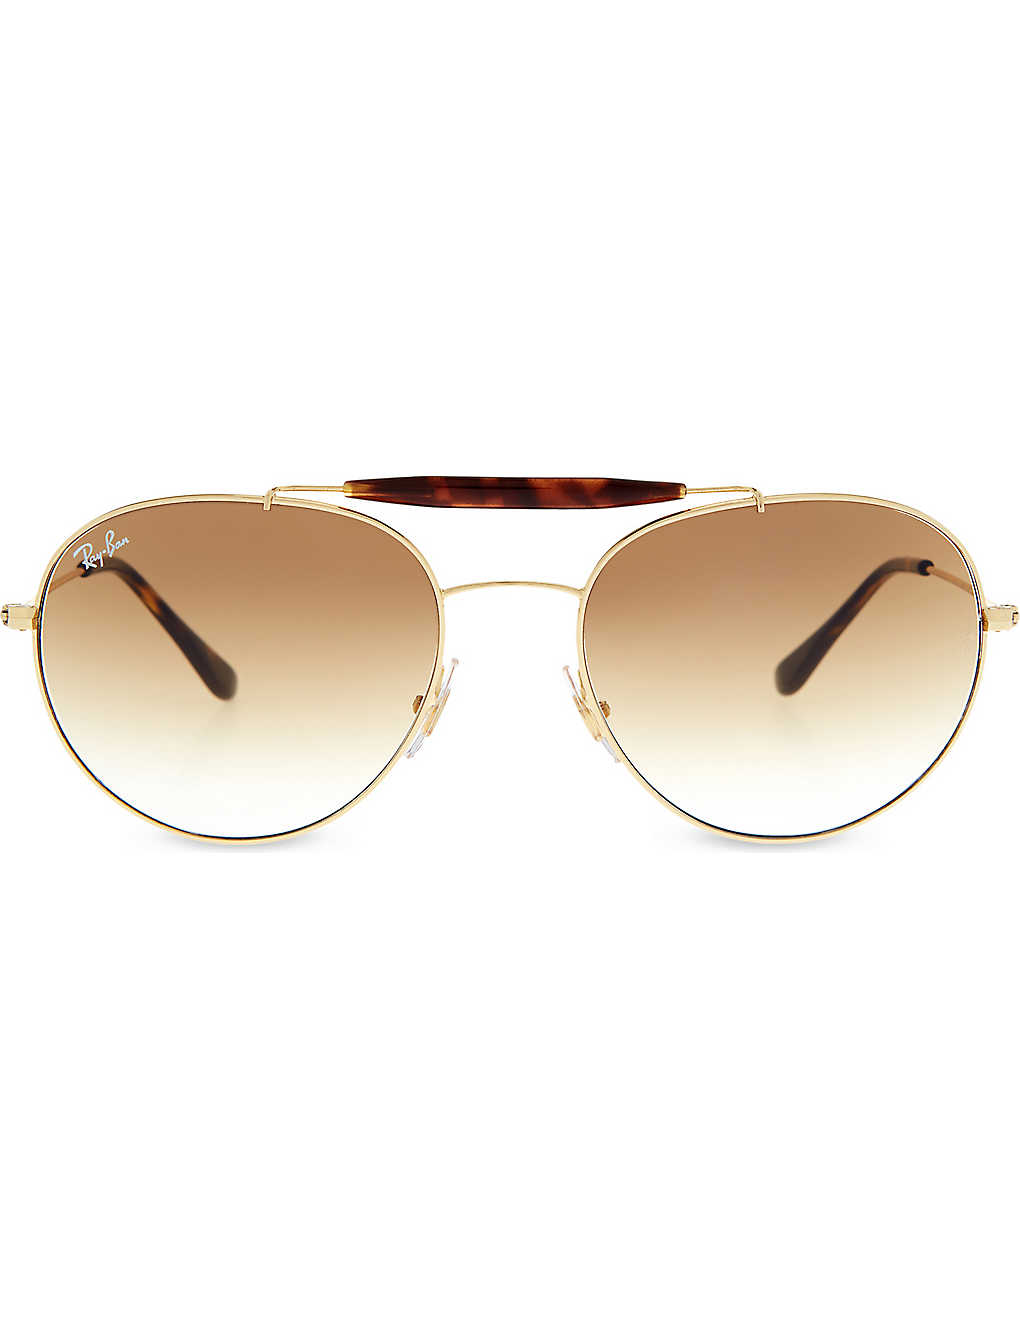 a5d909ad8c2 RAY-BAN - RB3540 Aviator sunglasses